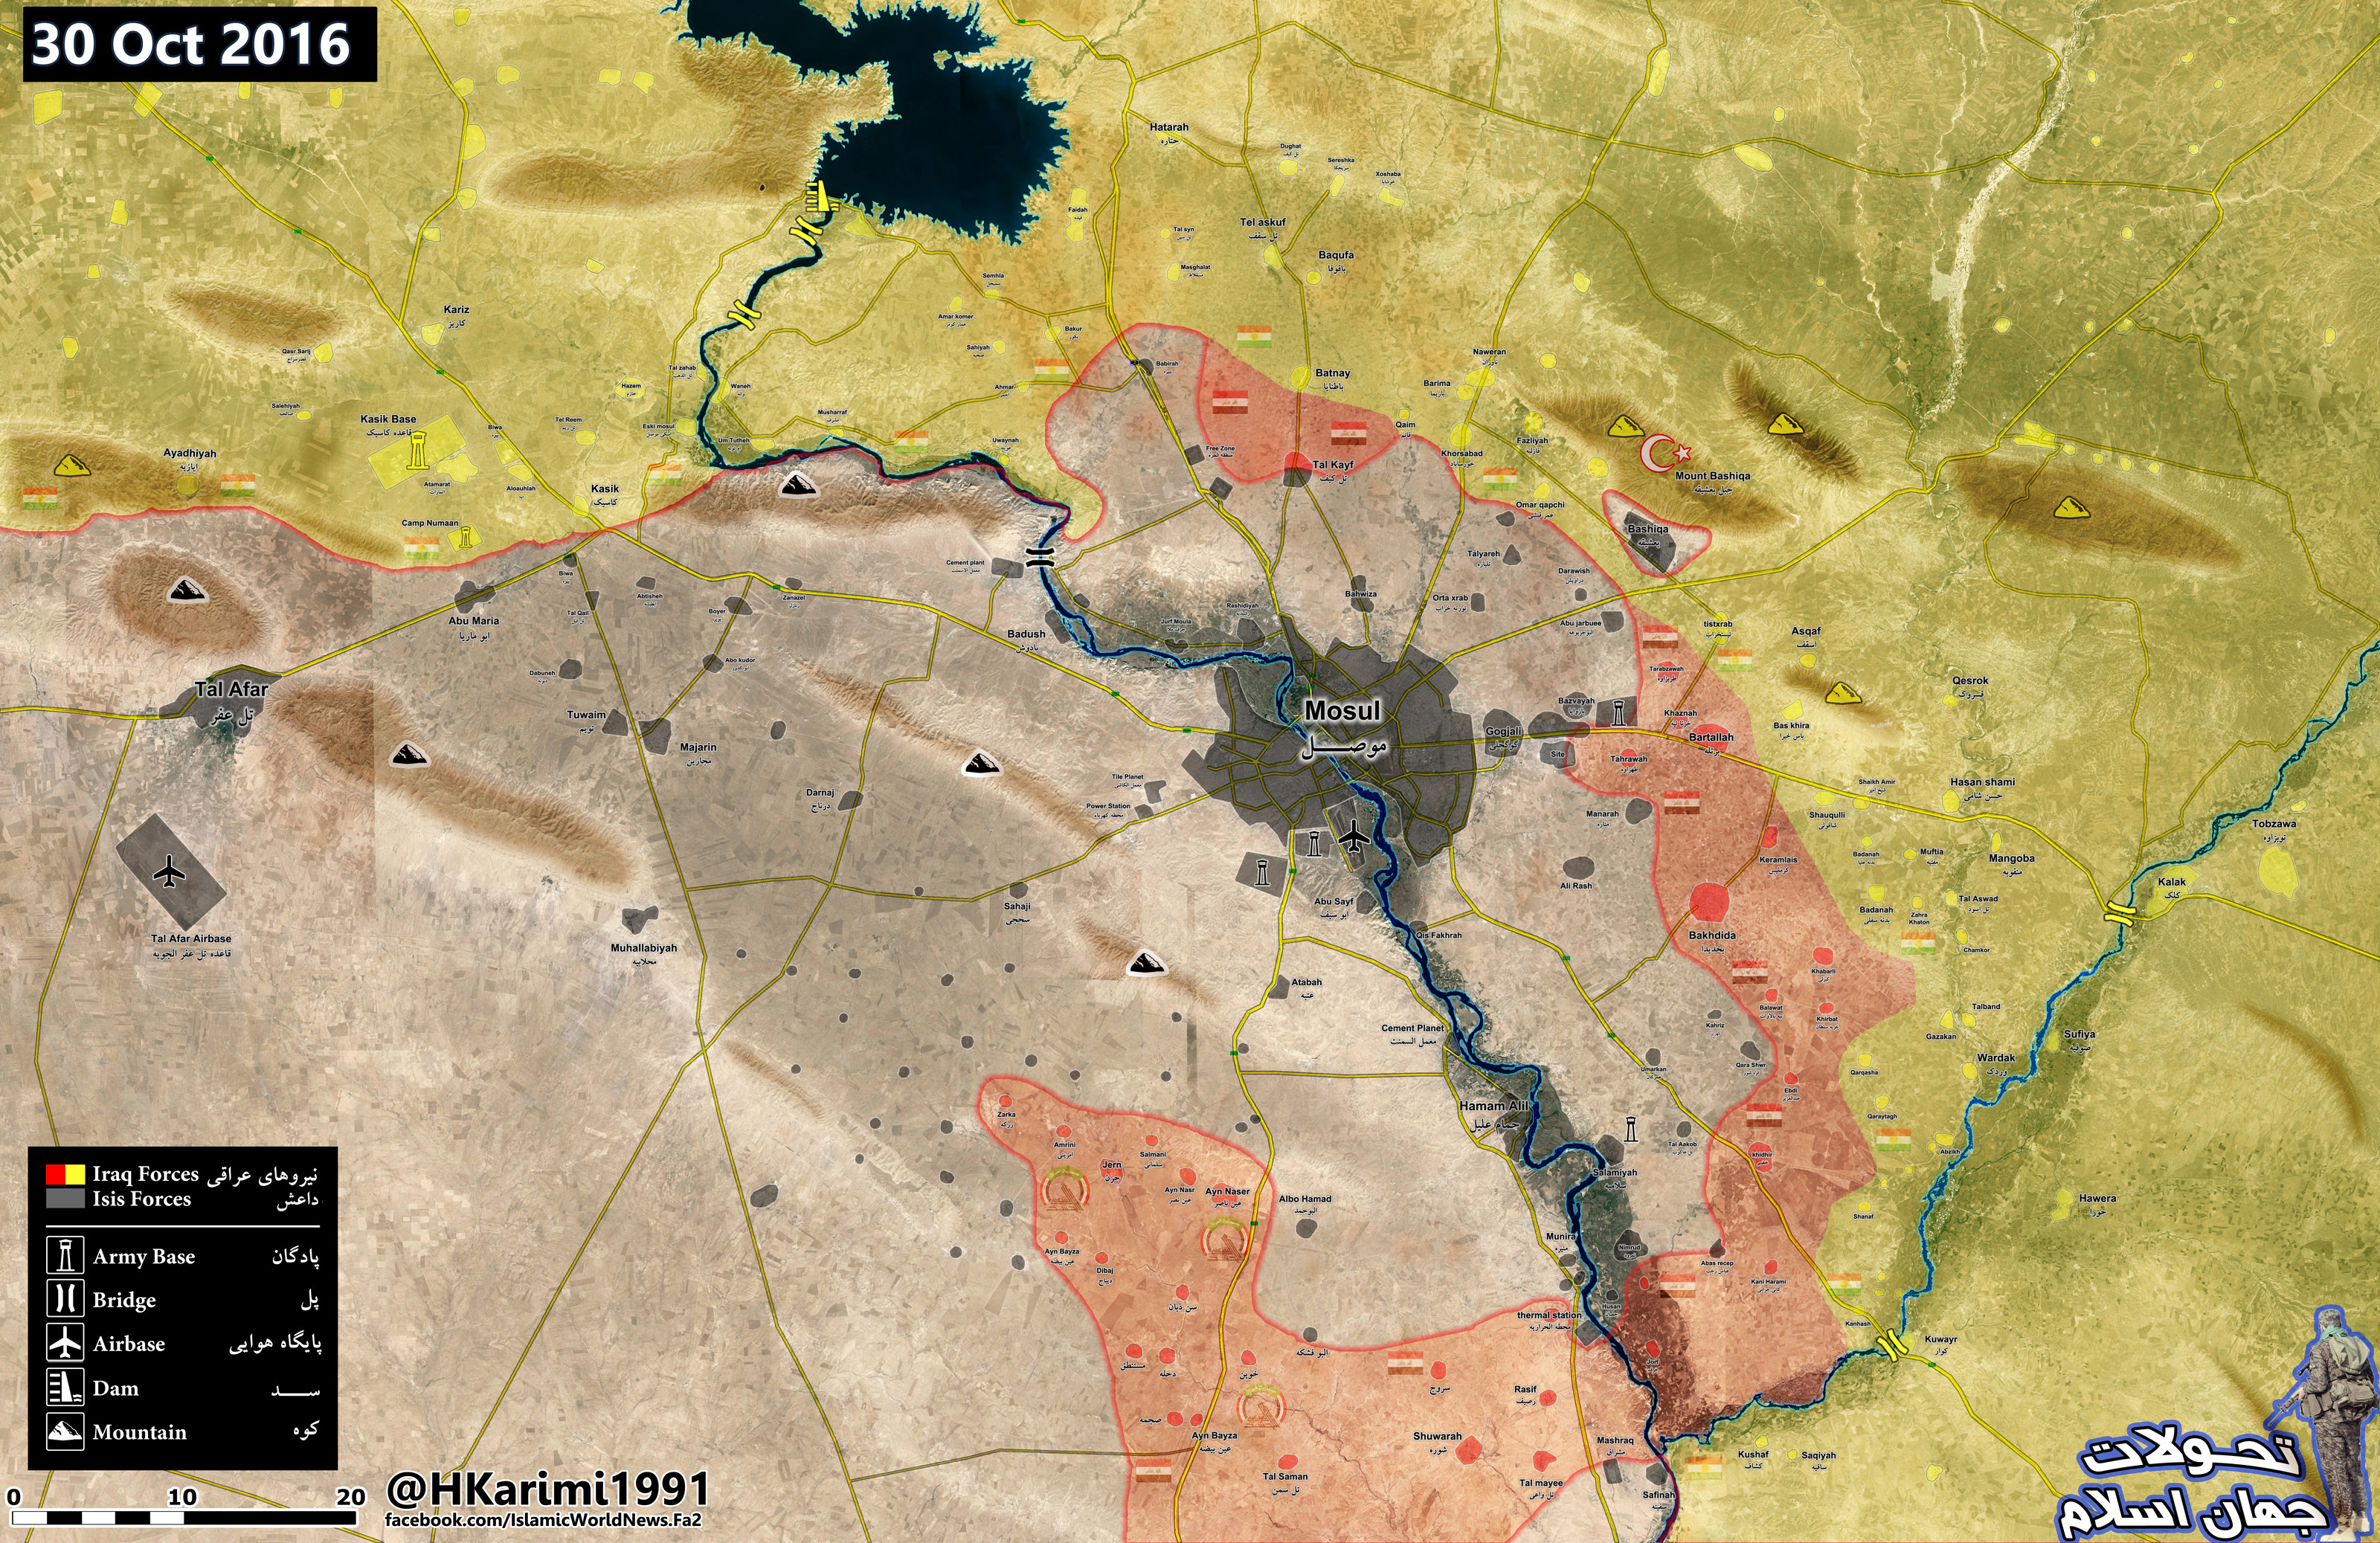 Iraqi Map Update: Results of 14-Day Long Operation to Liberate Mosul